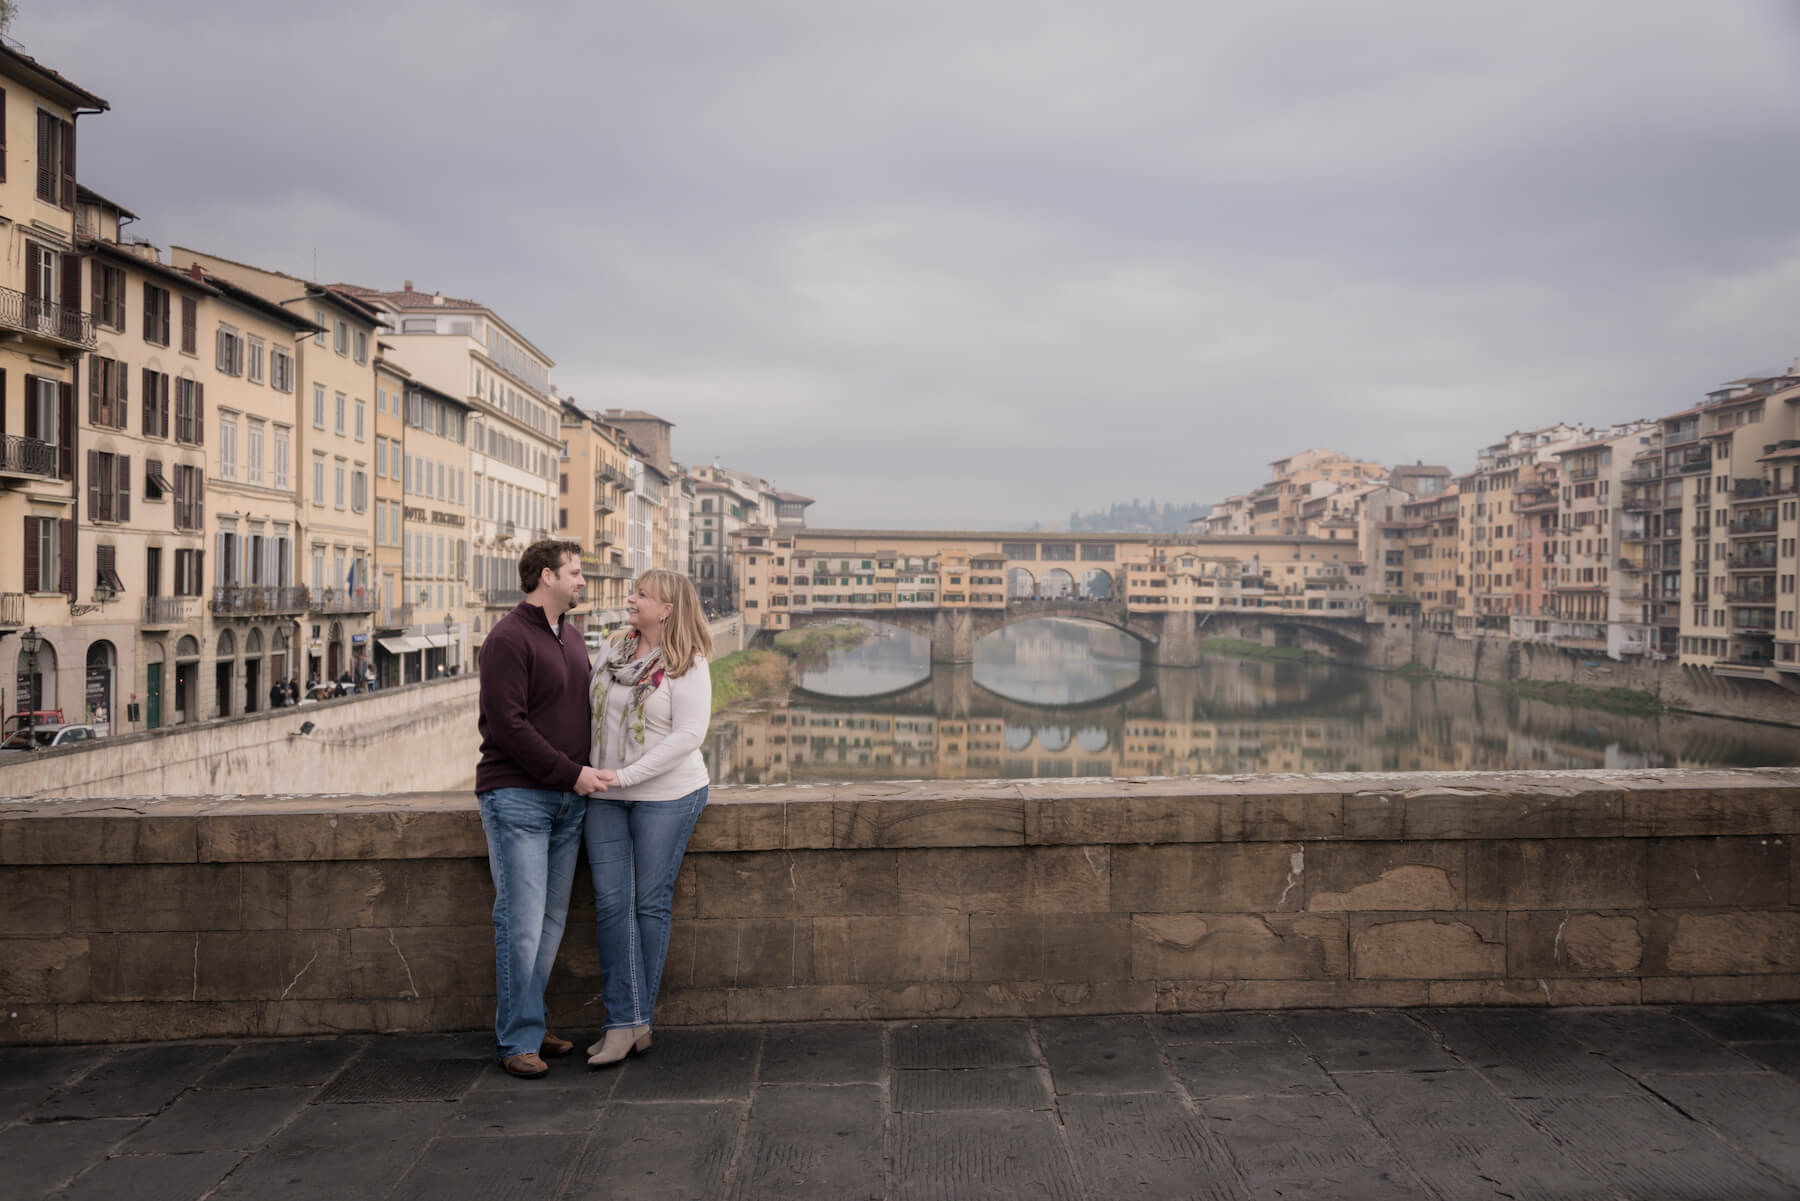 Couple looking lovingly at each other on a trip together at Ponte Vecchio in Florence, Italy